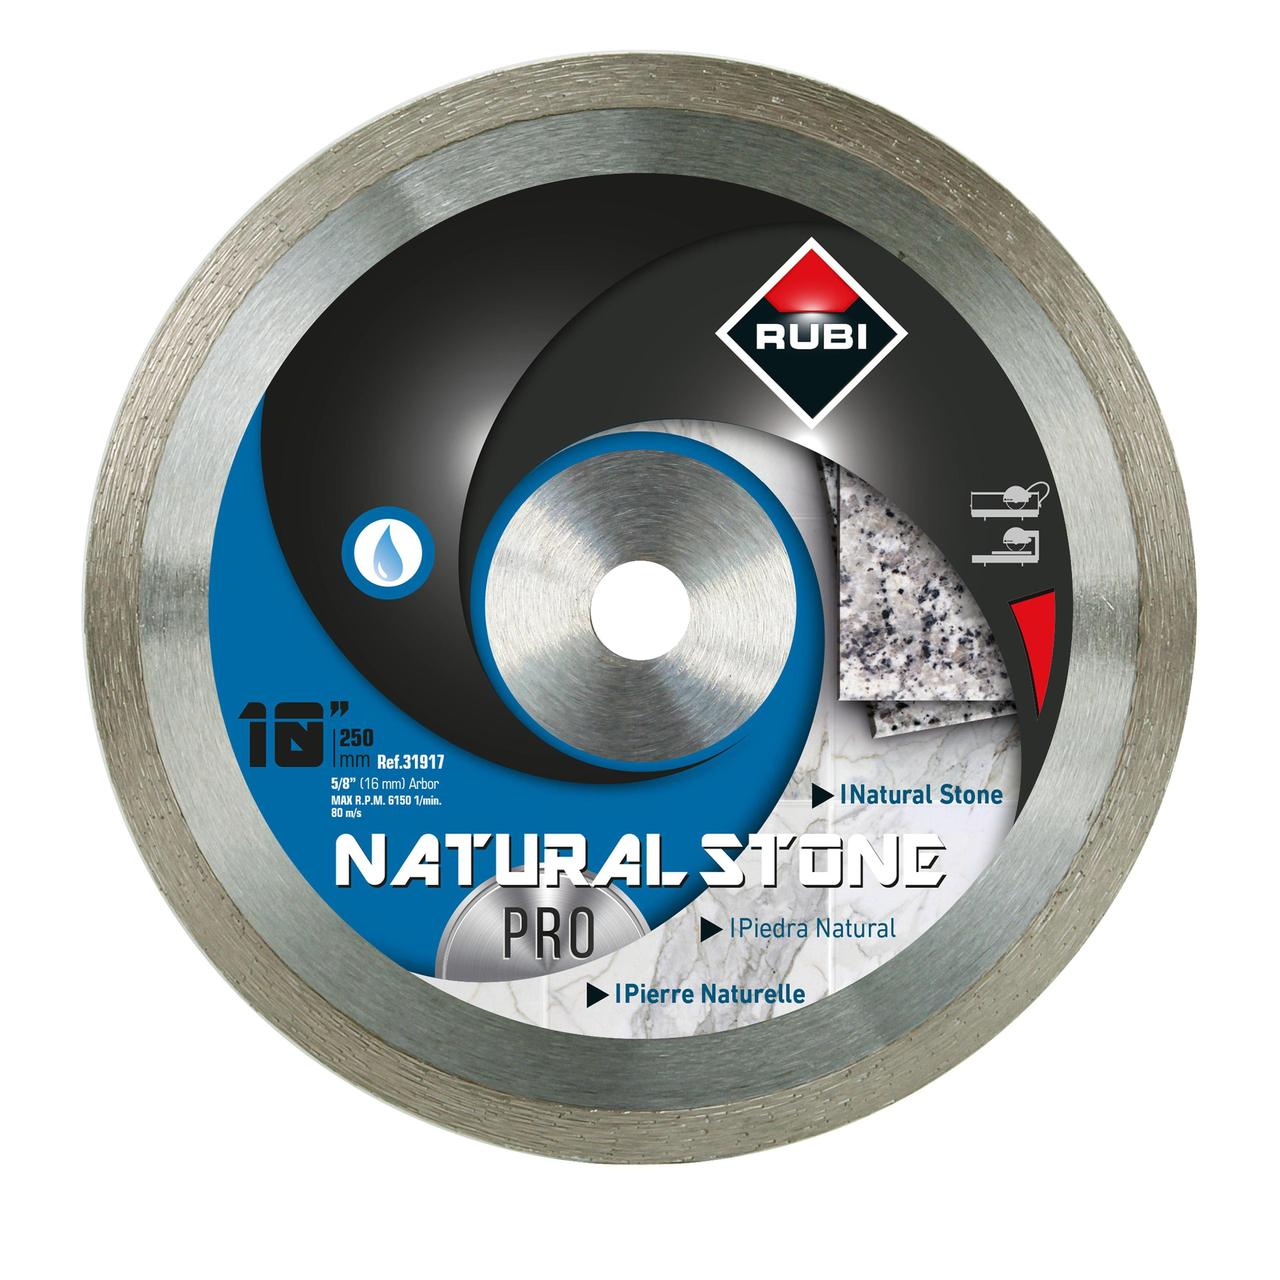 NATURAL STONE Diamond blade